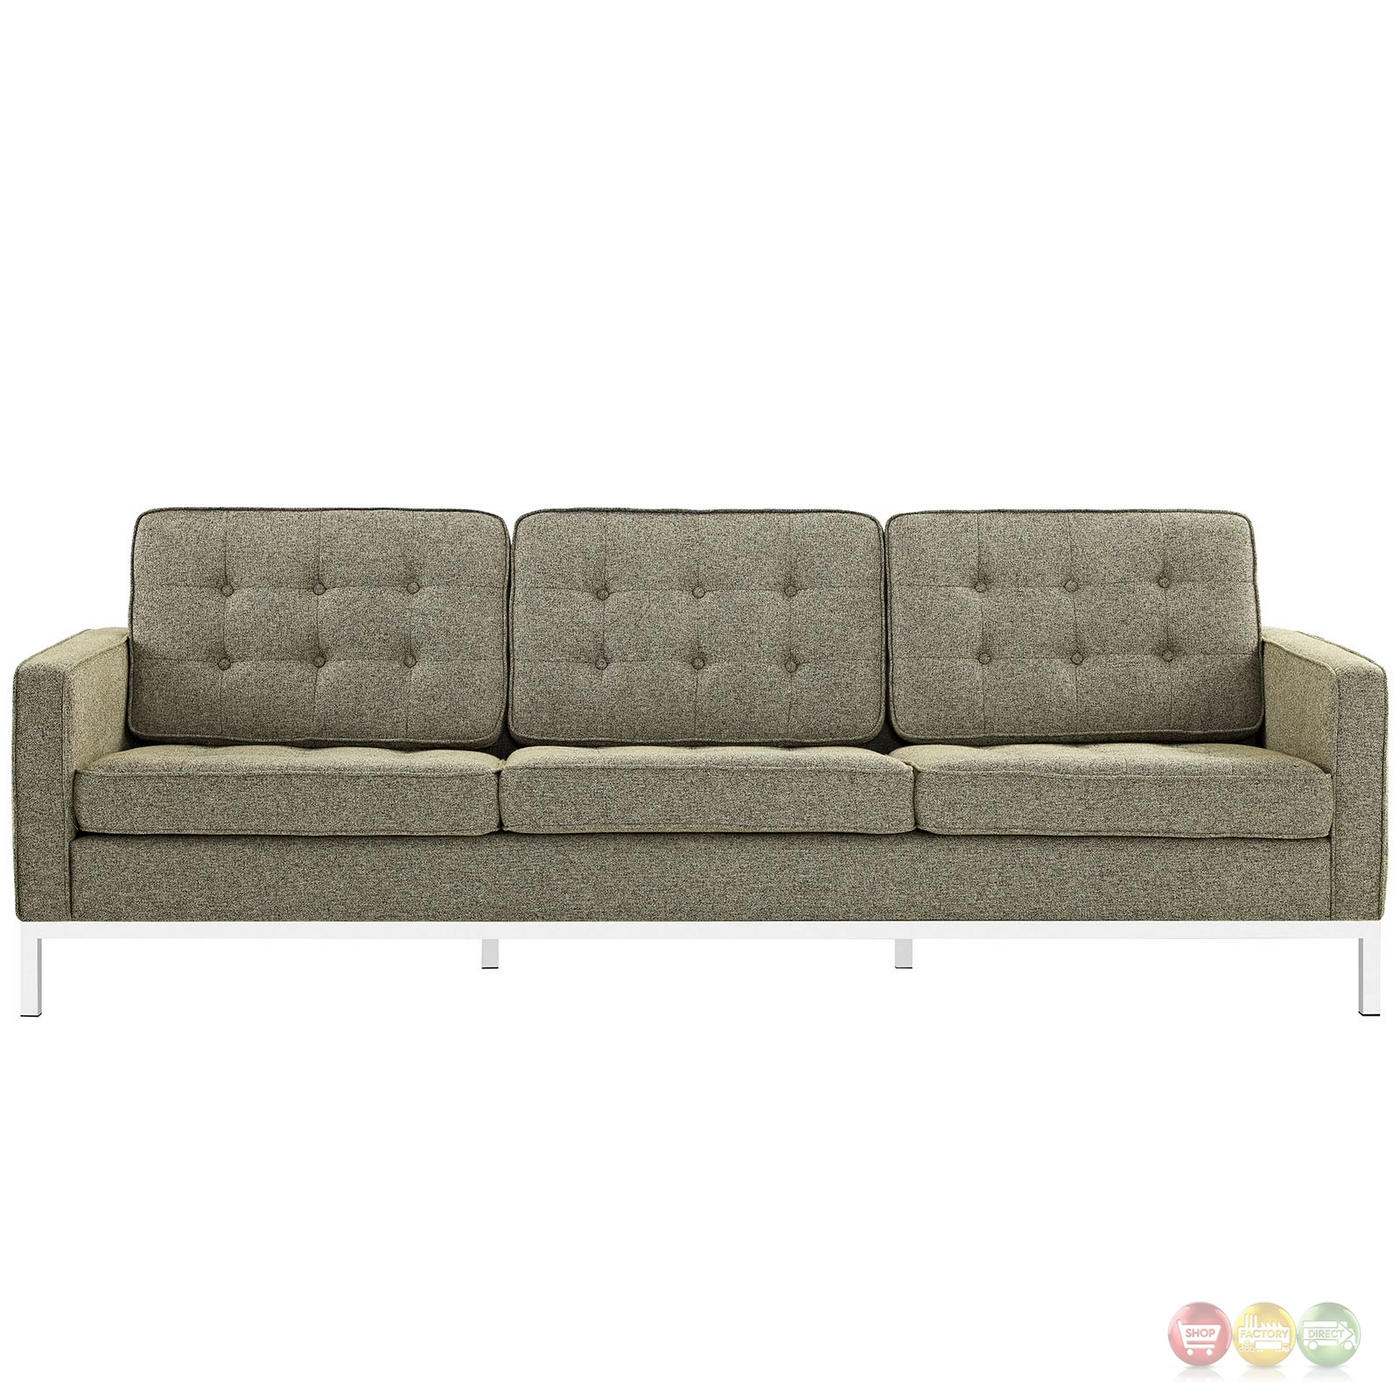 Mid century modern loft 2pc button tufted sofa loveseat for Tufted couch set